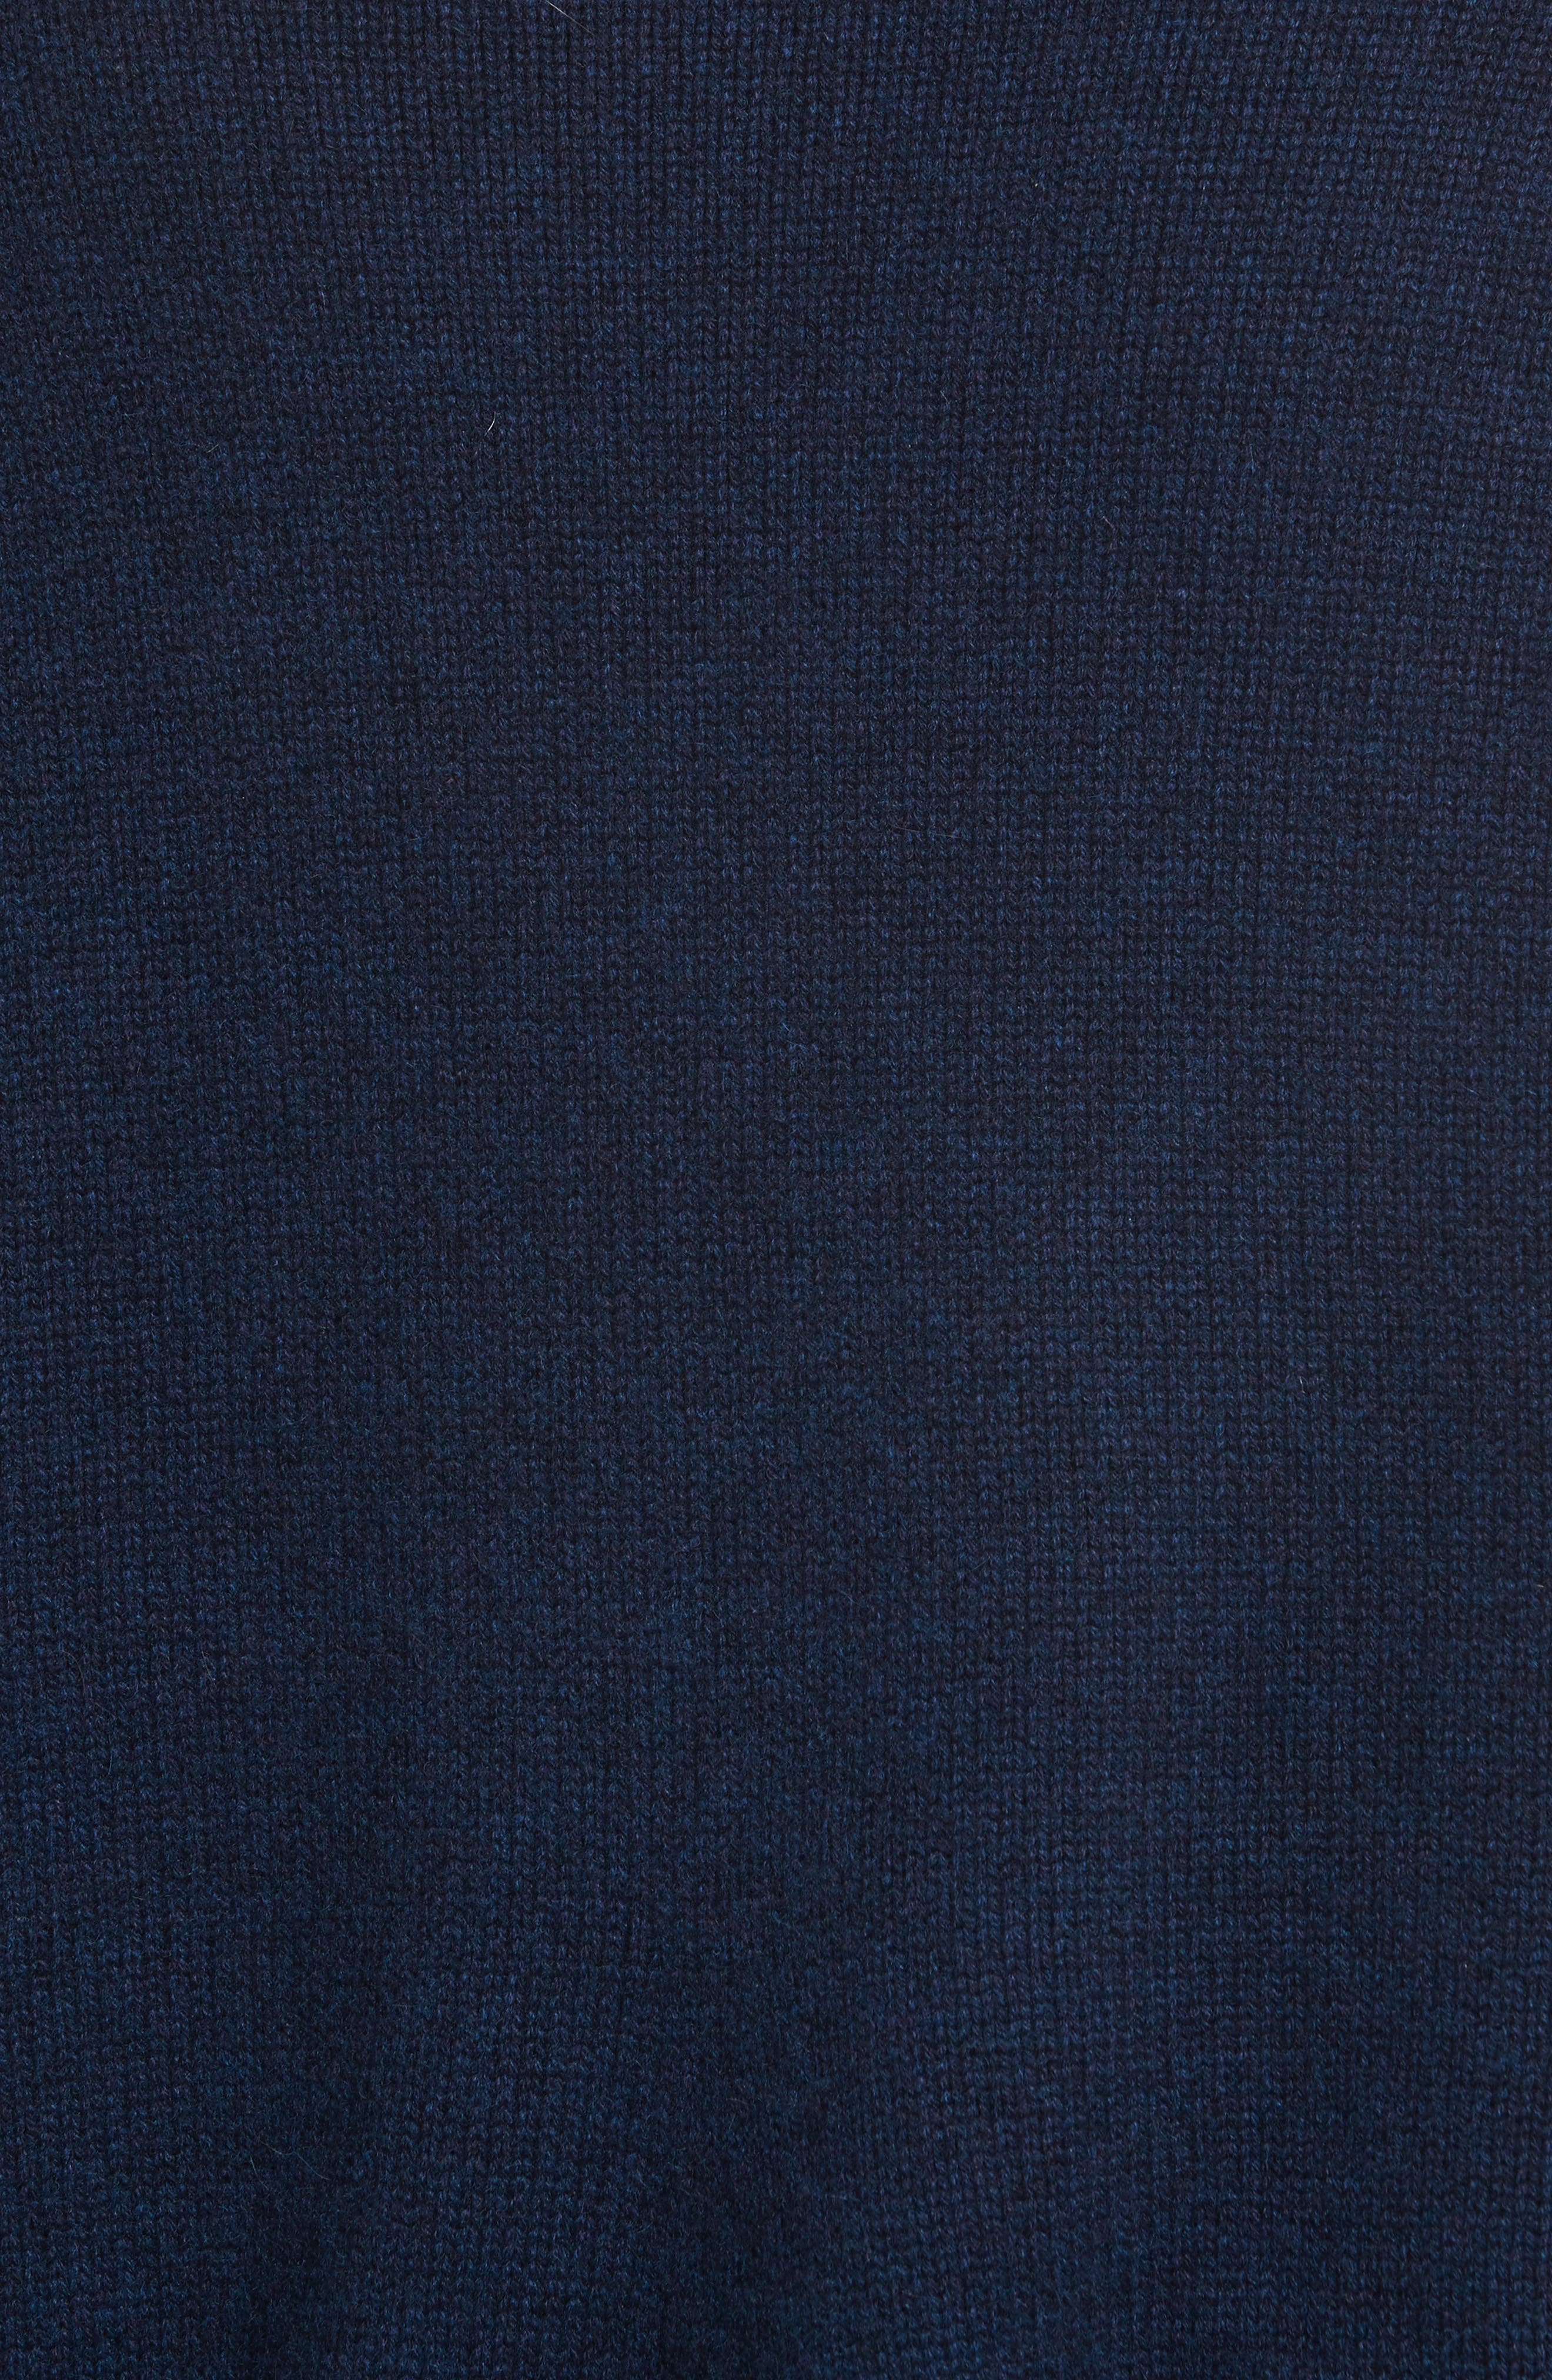 Sculpted Sleeve High/Low Cashmere Sweater,                             Alternate thumbnail 5, color,                             Navy